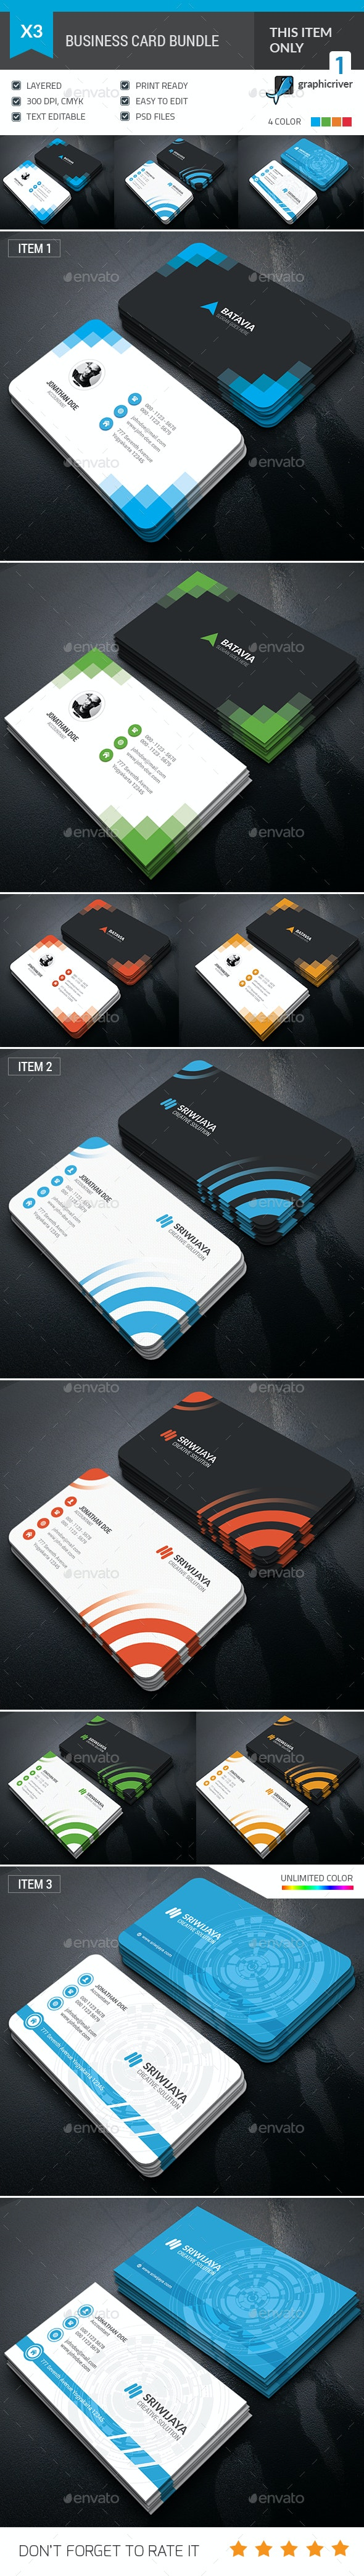 Professional Business Card Bundle - Corporate Business Cards